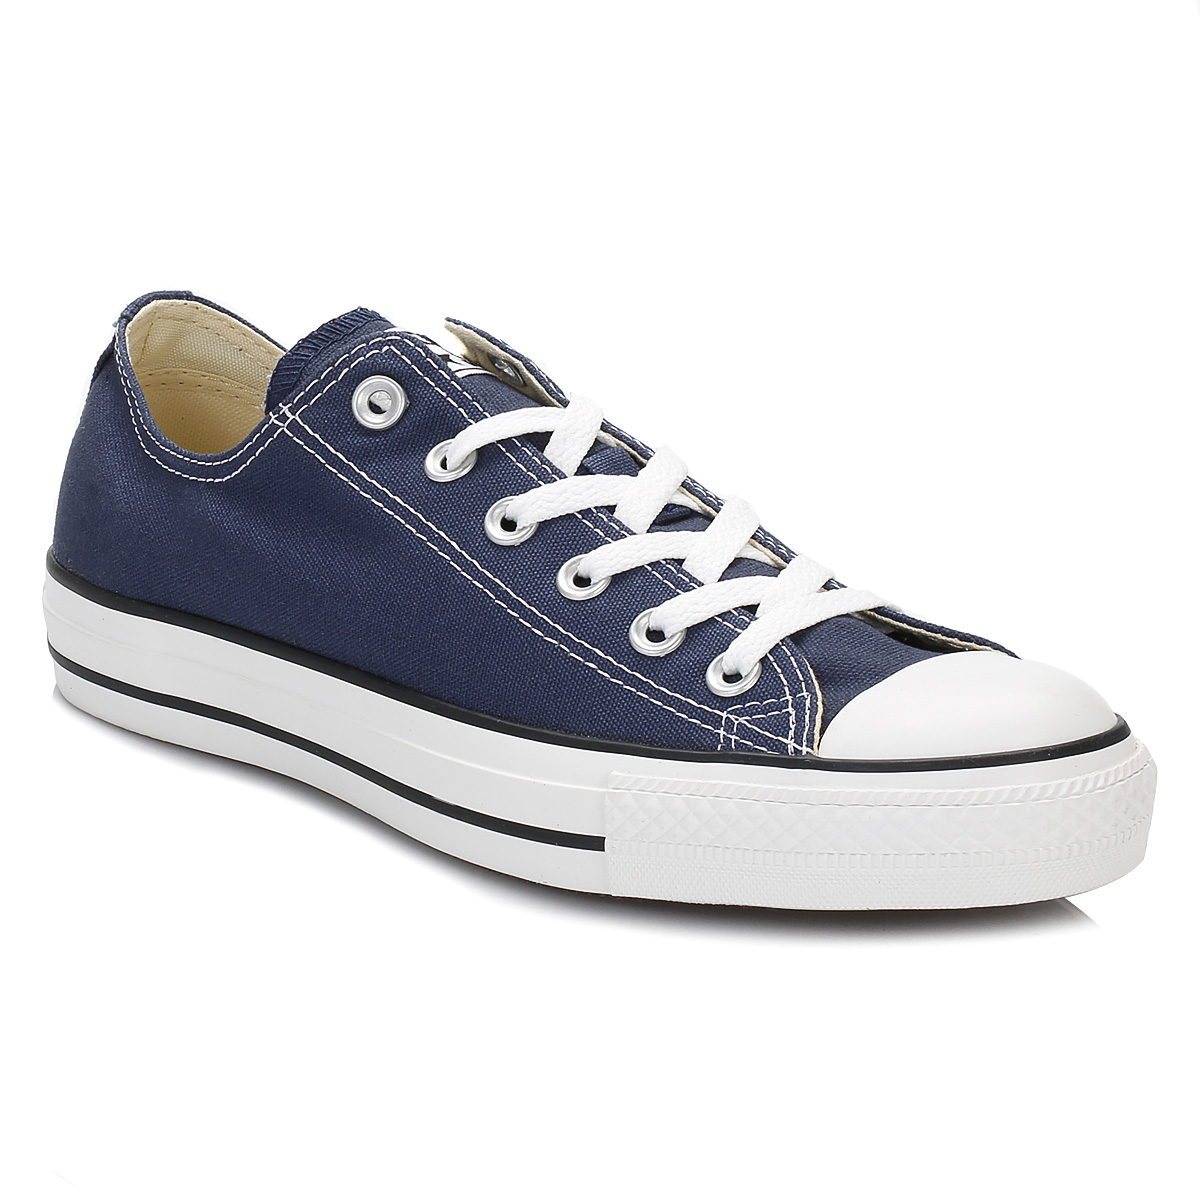 Converse Uomo Unisex CT Niedrig Navy Blau Canvas Trainers  Uomo Converse Damenschuhe Lace Up Sneakers b943d0